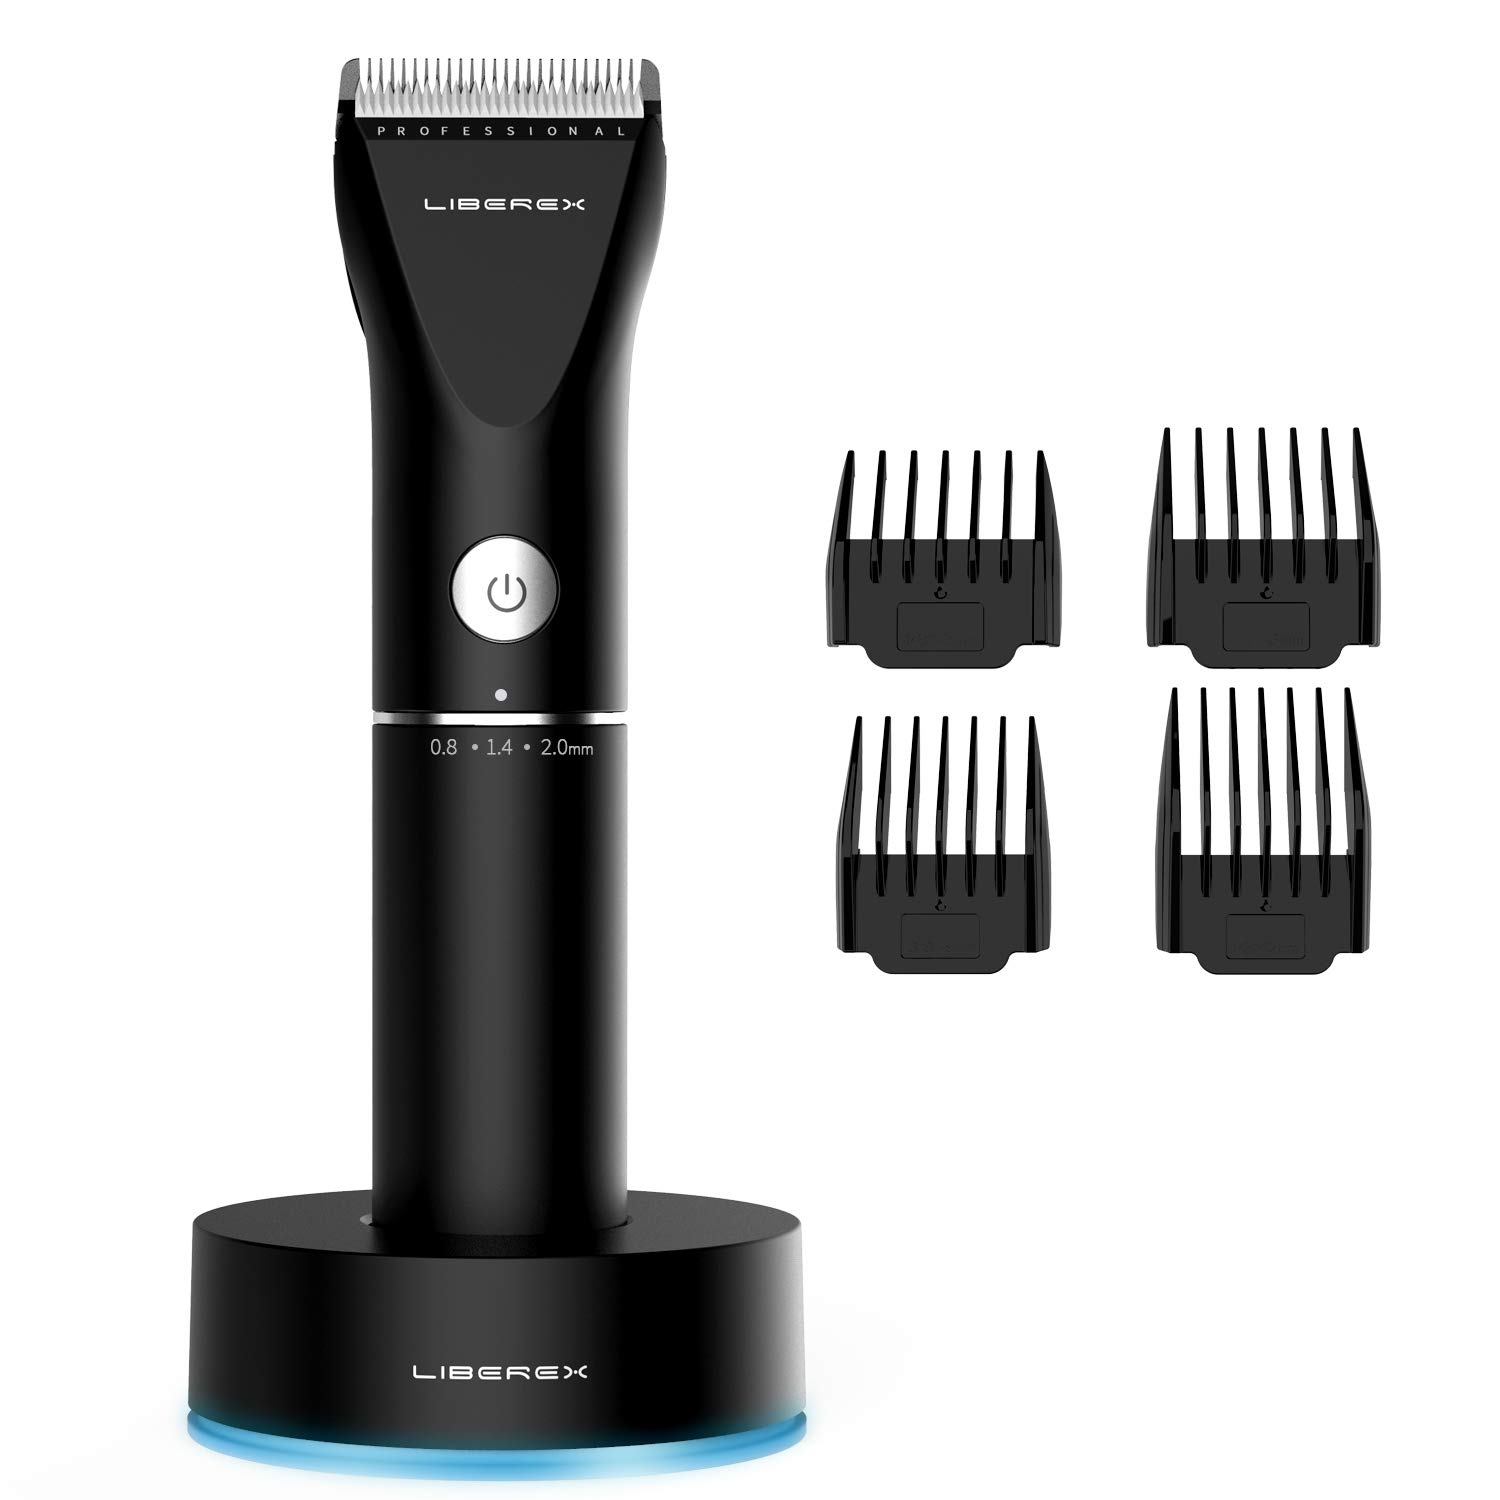 Hair Clippers - Liberex Professional Cordless Electric Hair Cutter Machine Kit Rechargeable Wireless Hair Grooming Trimmers Set for Men Kids Babies Family Home with 4 Guide Combs, Charging Base